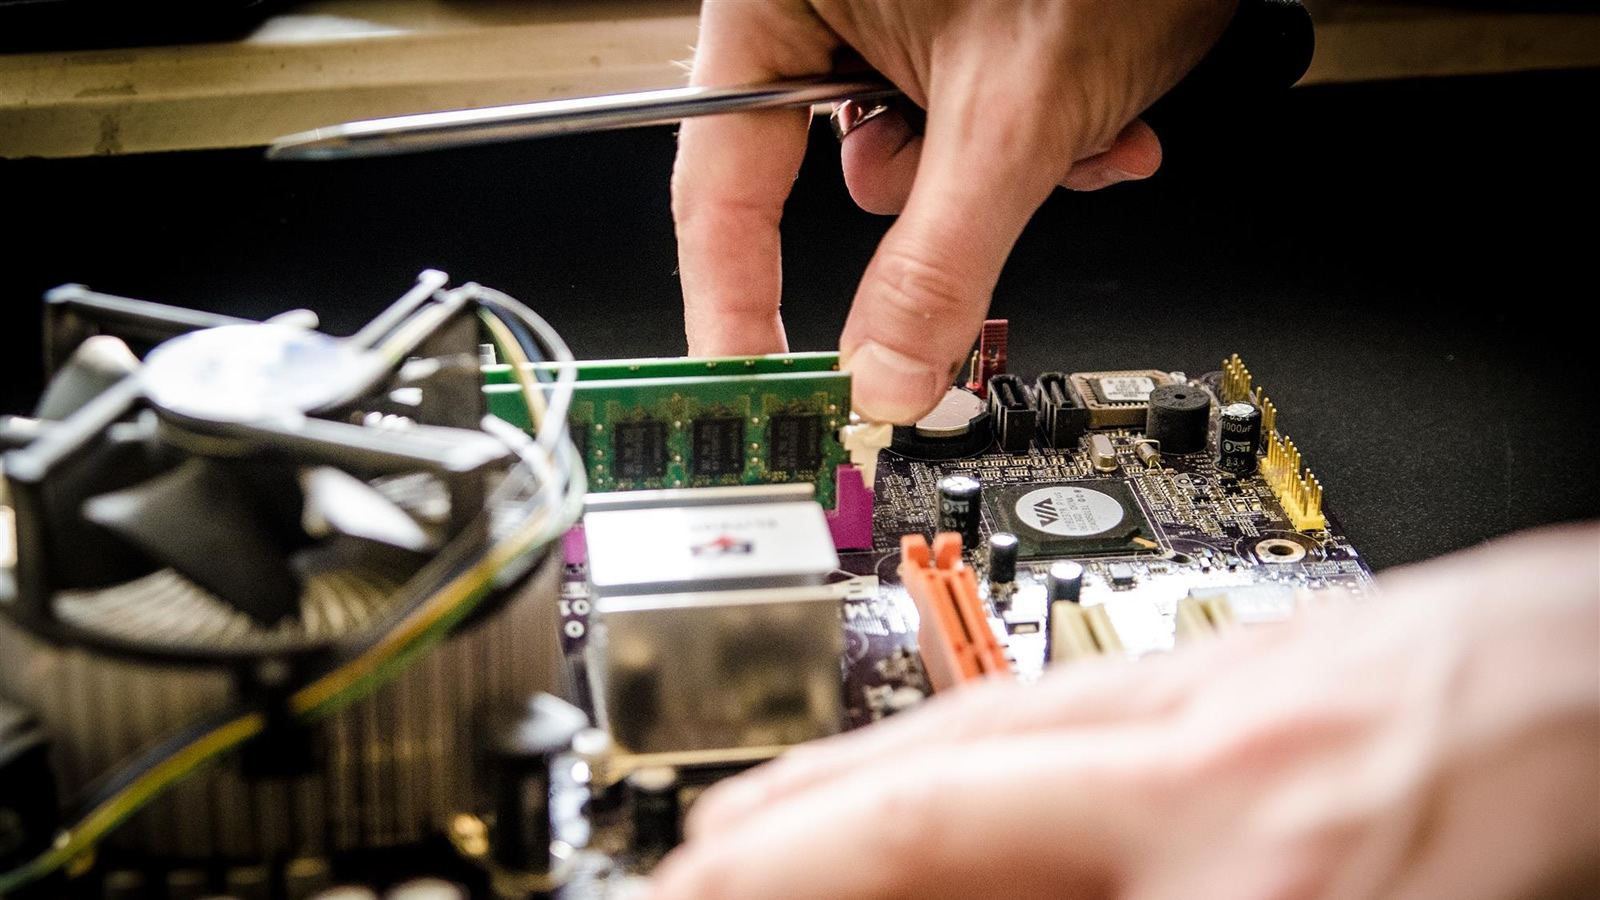 <h4>Right To Repair</h4><p>Tech and other companies too often make things hard to repair. We're backing Right To Repair laws, so you don't have to throw away so much old stuff and buy so much new stuff.</p><em>Pixabay.com</em>